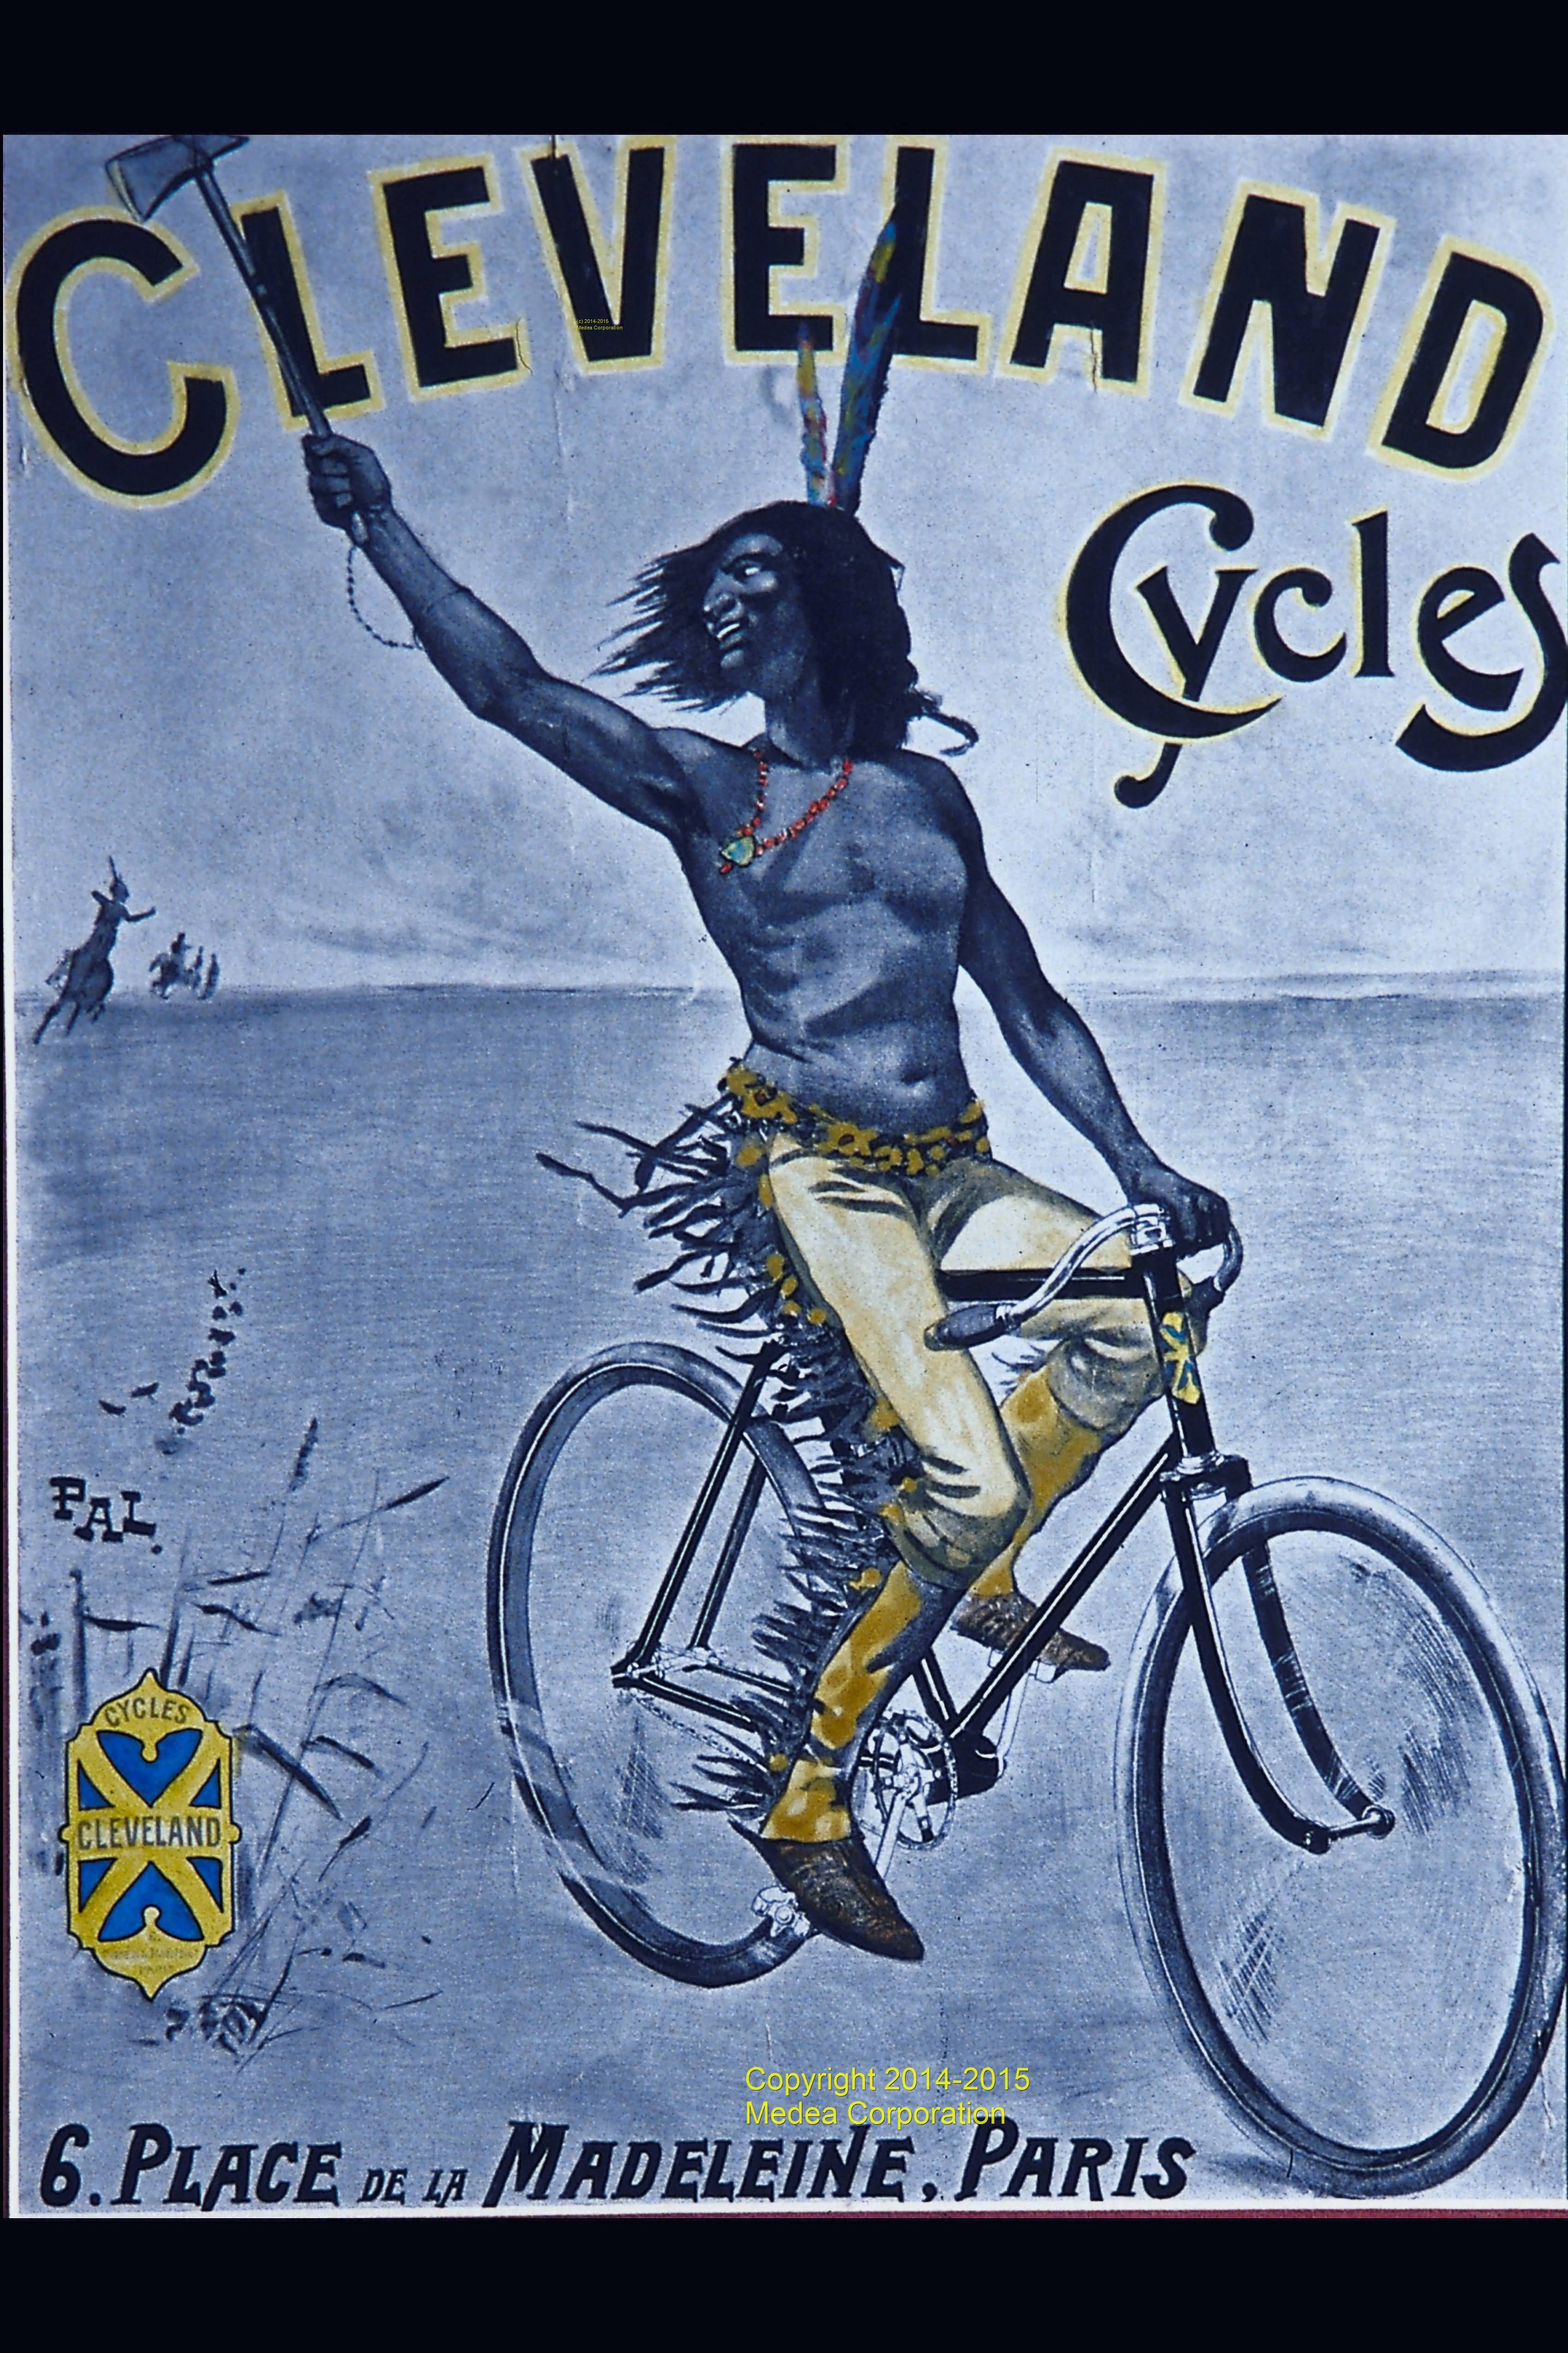 Cleveland Cycles was in Paris, France